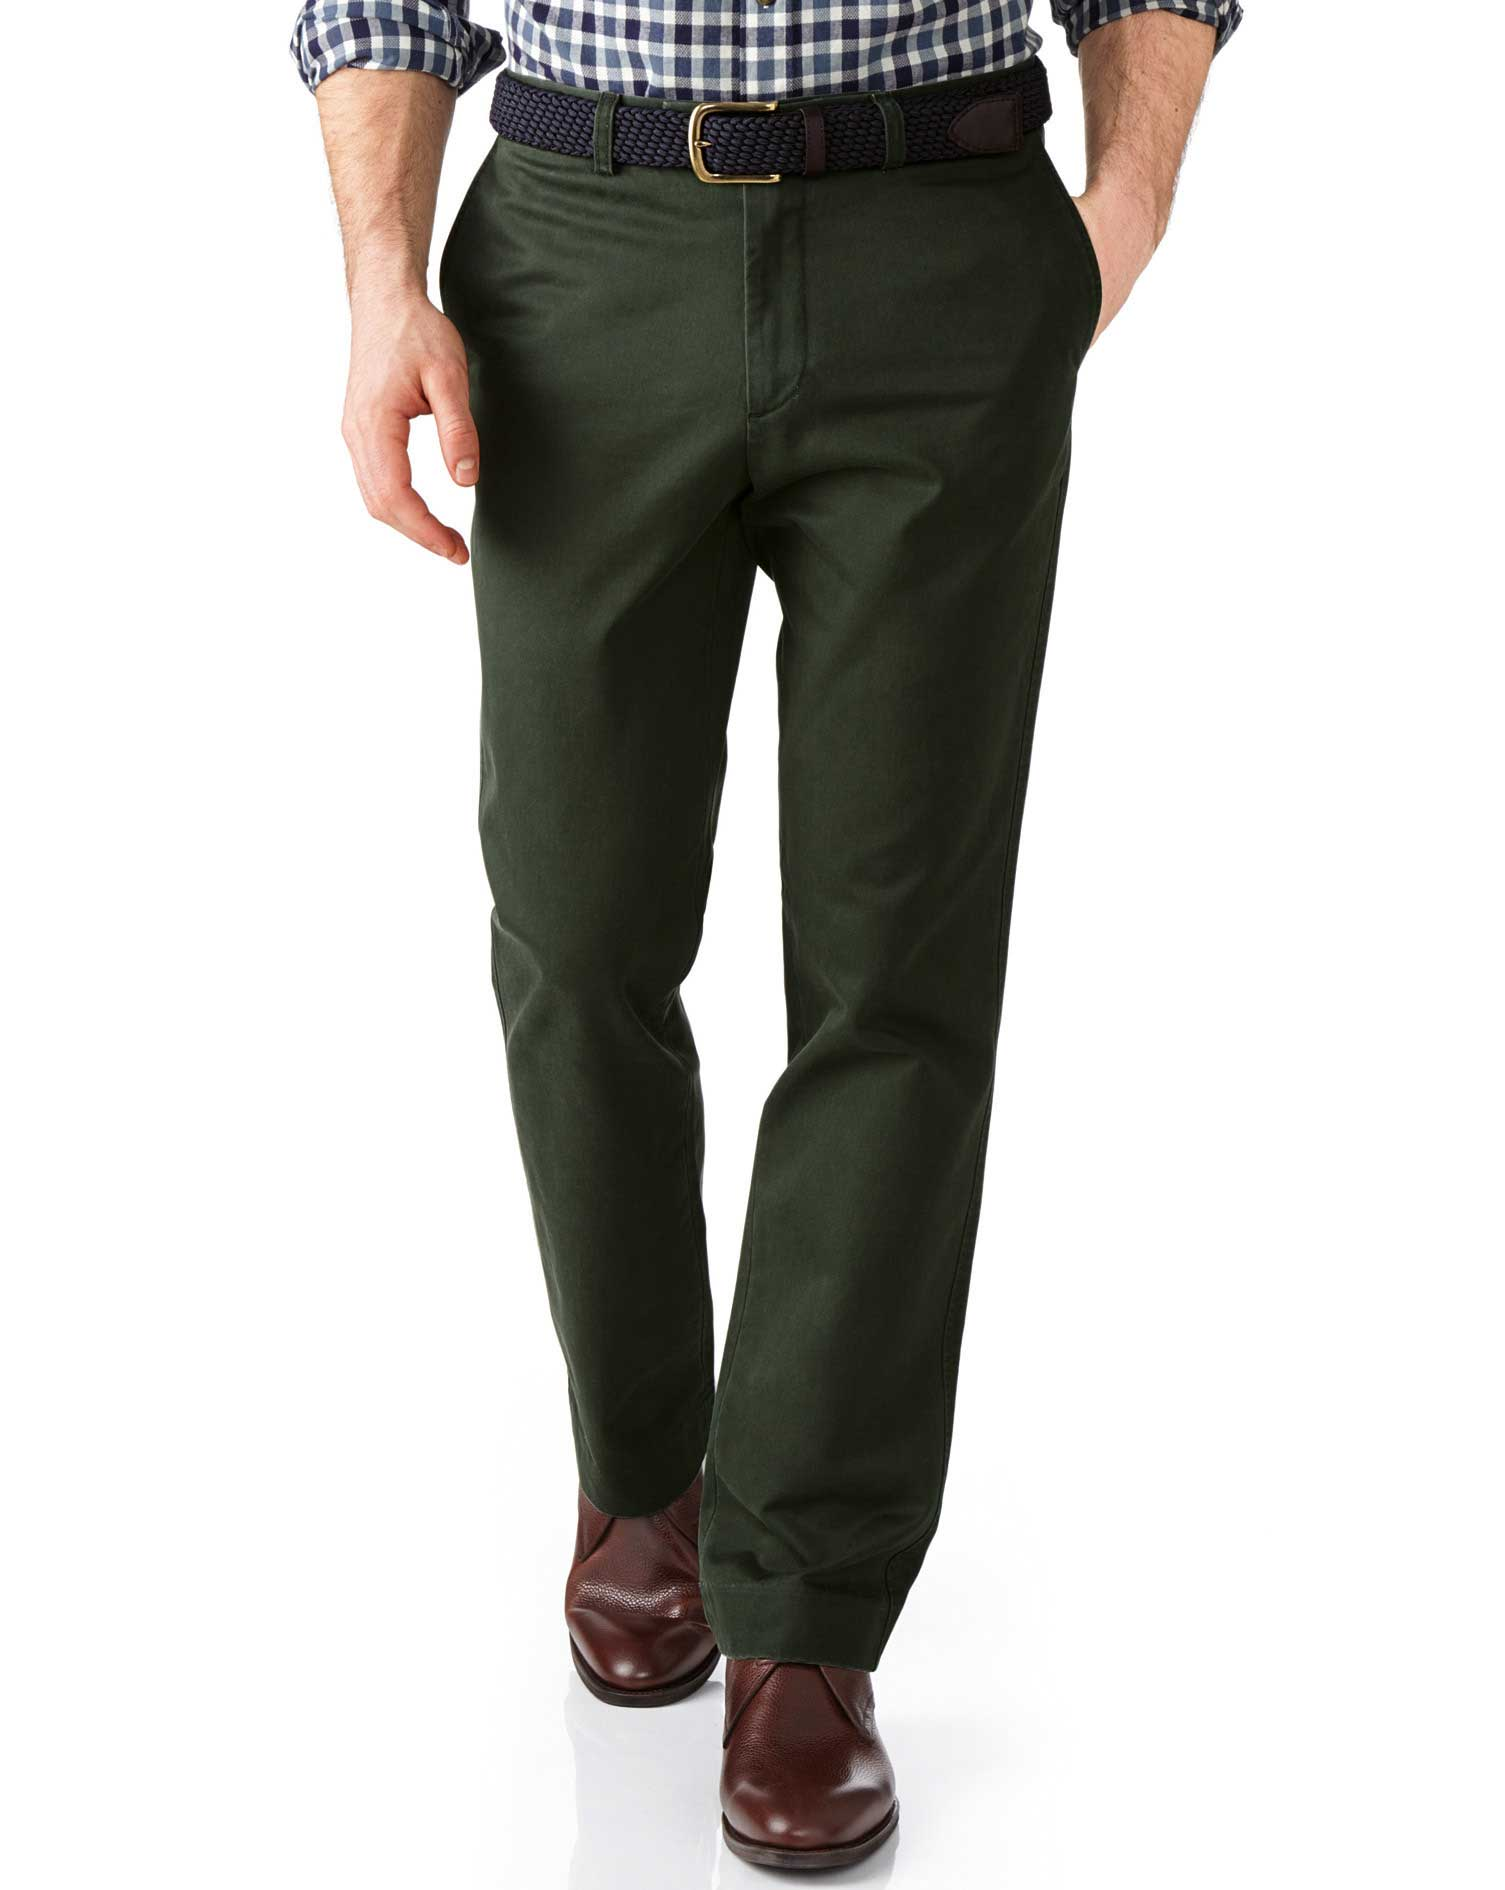 Dark Green Slim Fit Flat Front Weekend Cotton Chino Trousers Size W42 L34 by Charles Tyrwhitt